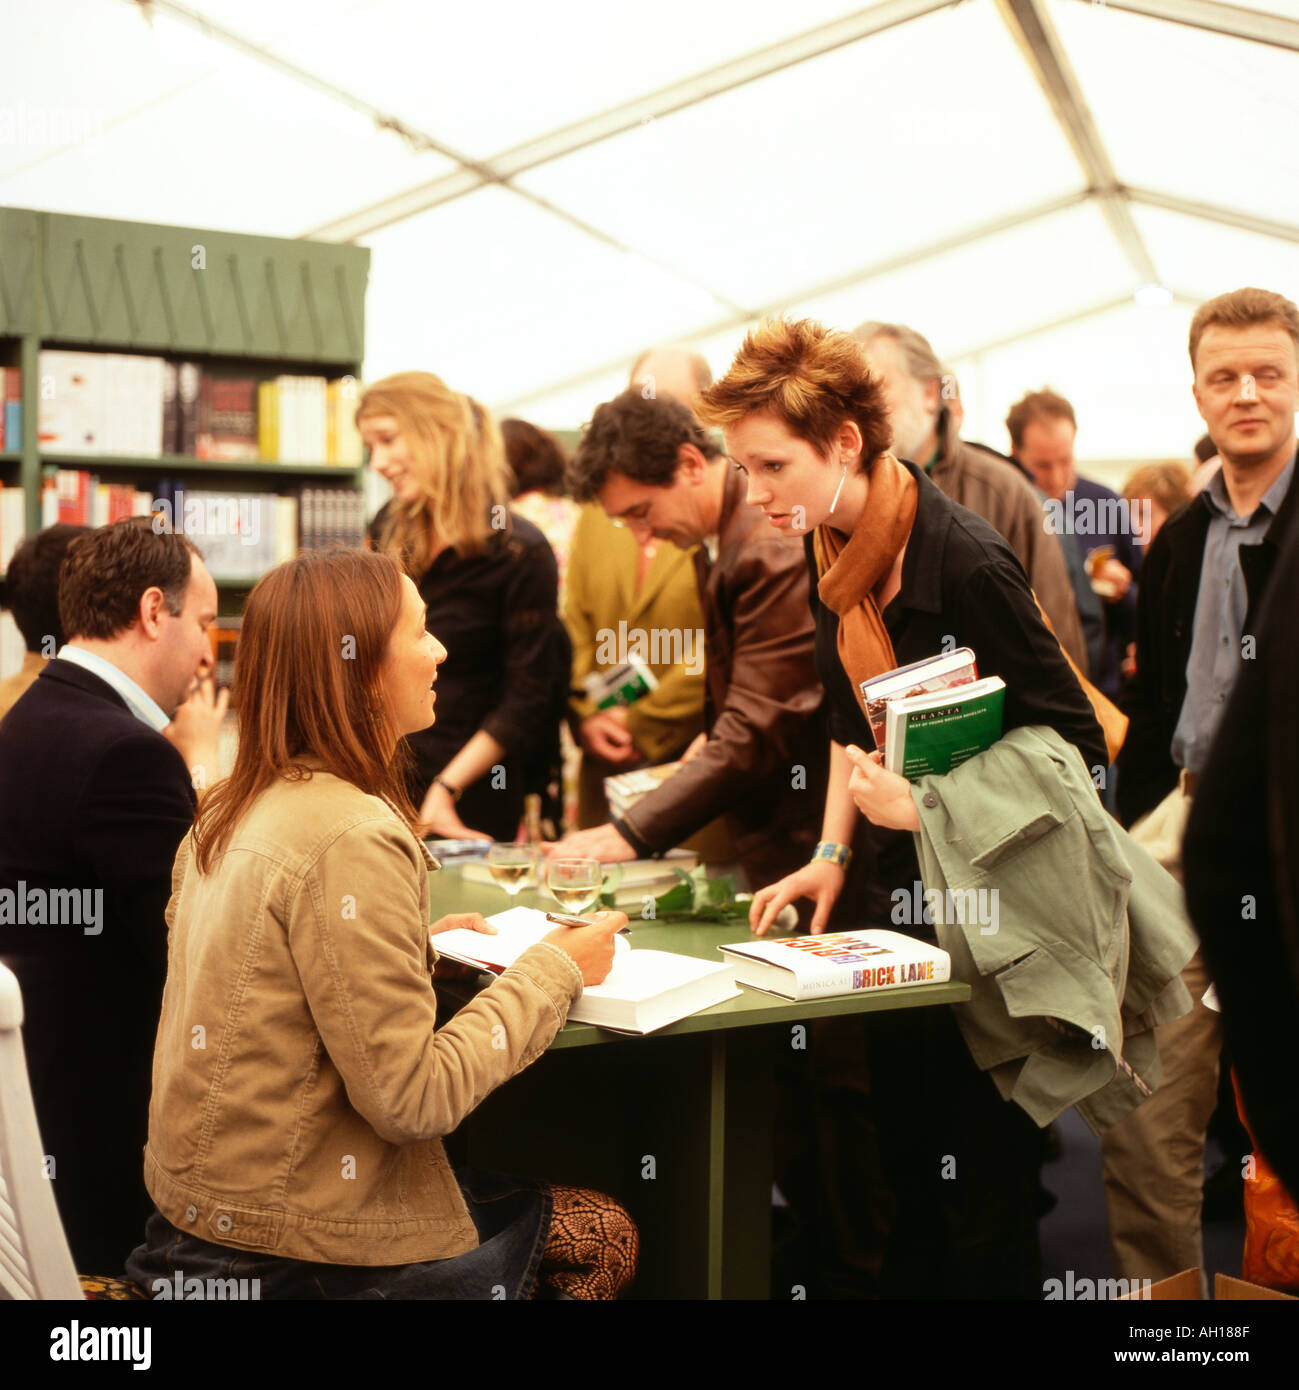 Bookshop queue for British Author Monica Ali after her talk signing her book 'Brick Lane' at Hay Festival  Hay-on-Wye Wales UK   KATHY DEWITT - Stock Image